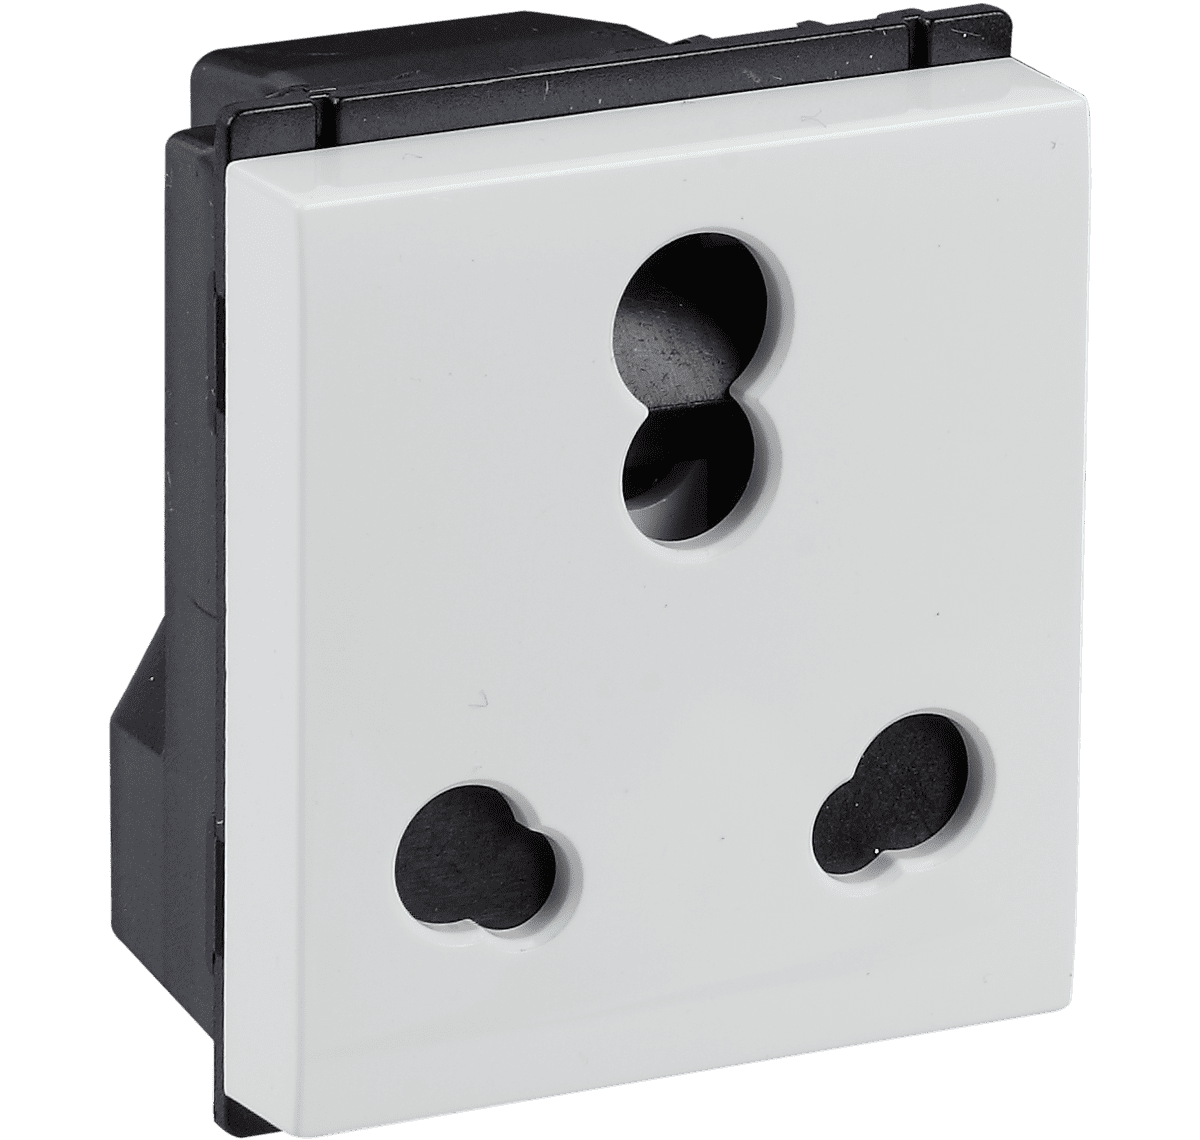 Crabtree - 6 A / 16 A Shuttered Socket